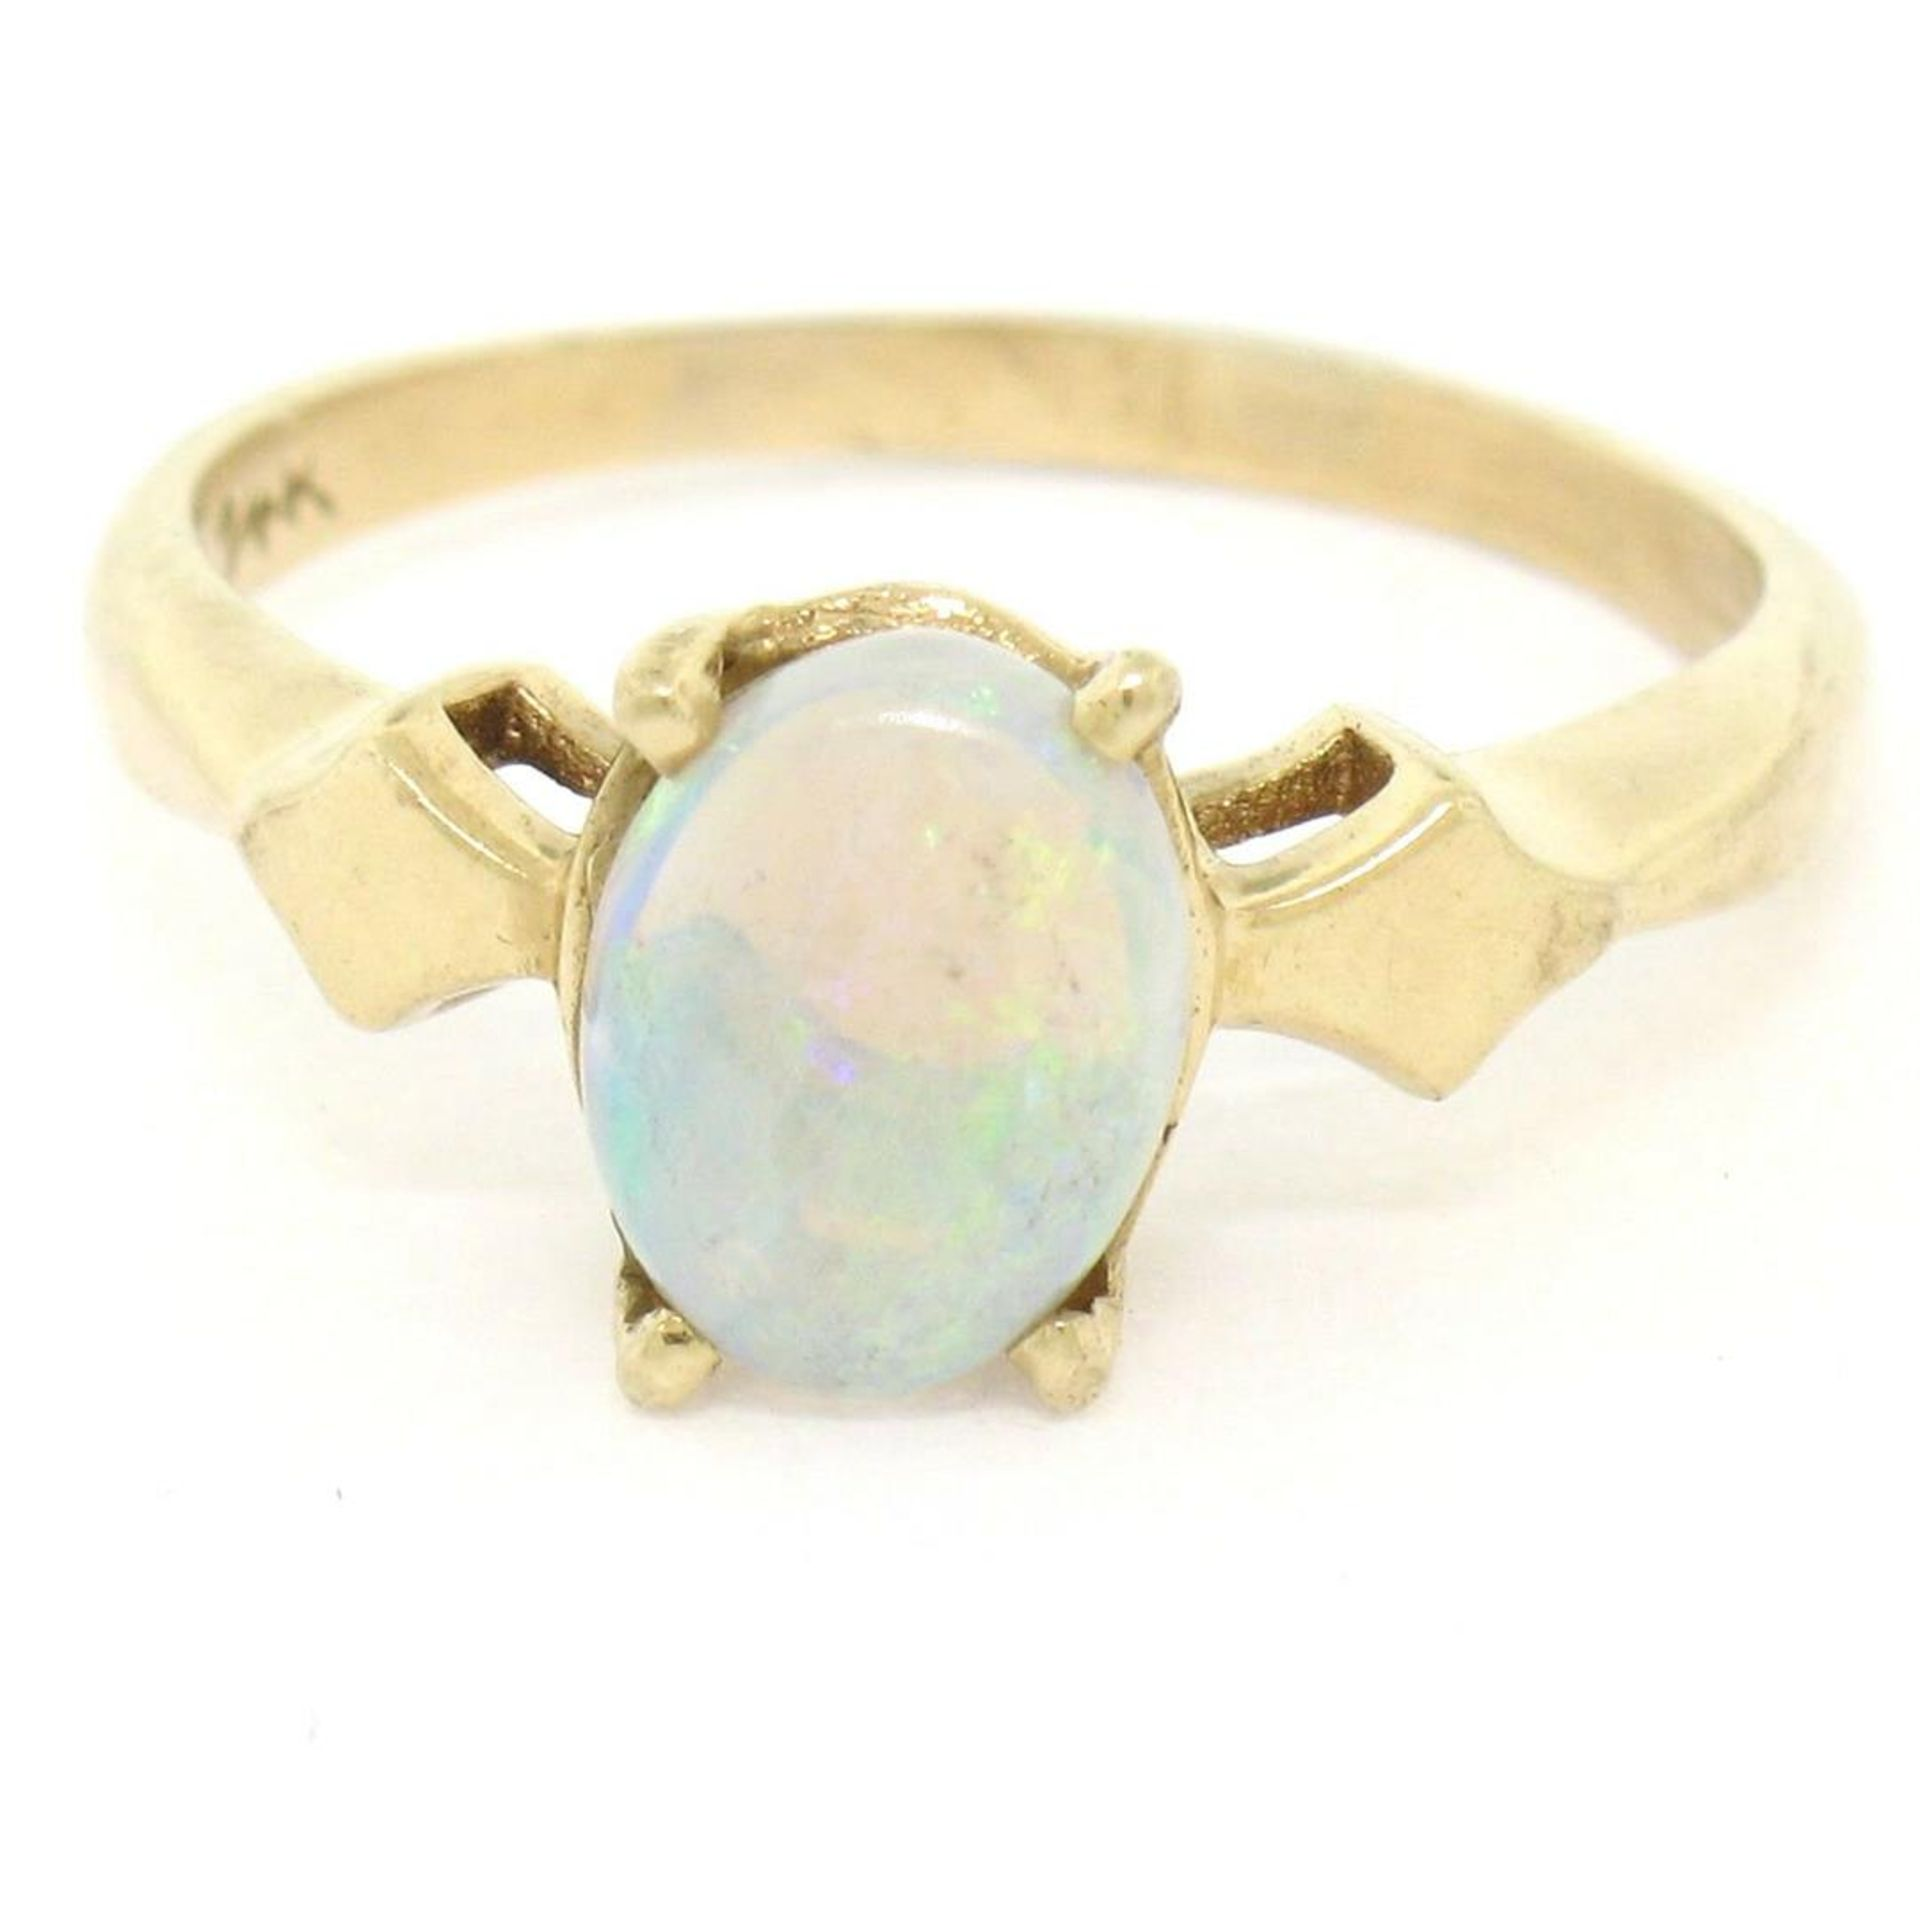 Vintage 14K Yellow Gold 0.65ct Petite Oval Cabochon Opal Solitaire Ring Size 6